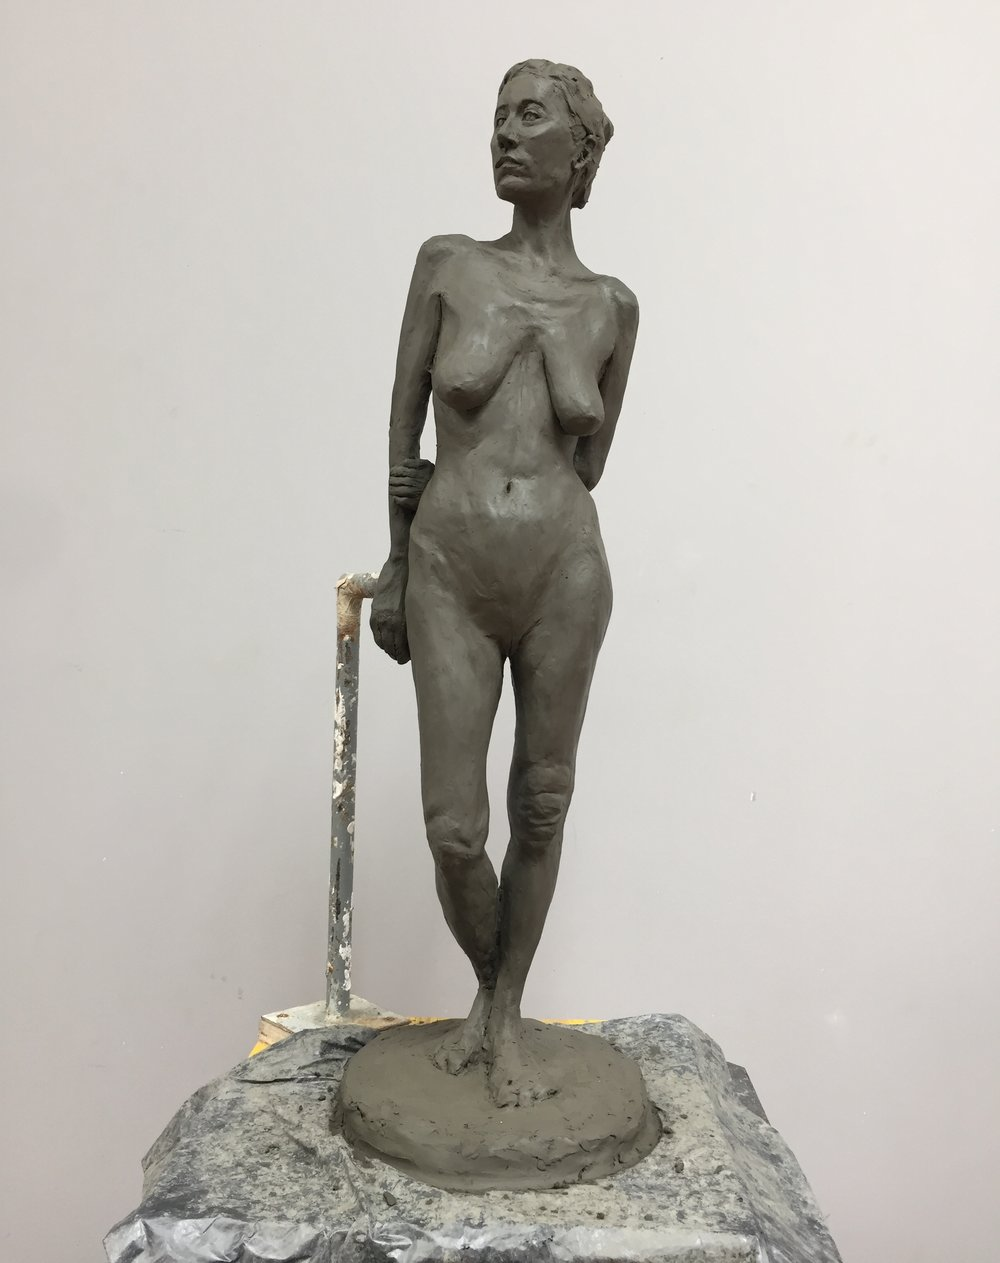 Figure, 2017. Clay. Half-lifesize.